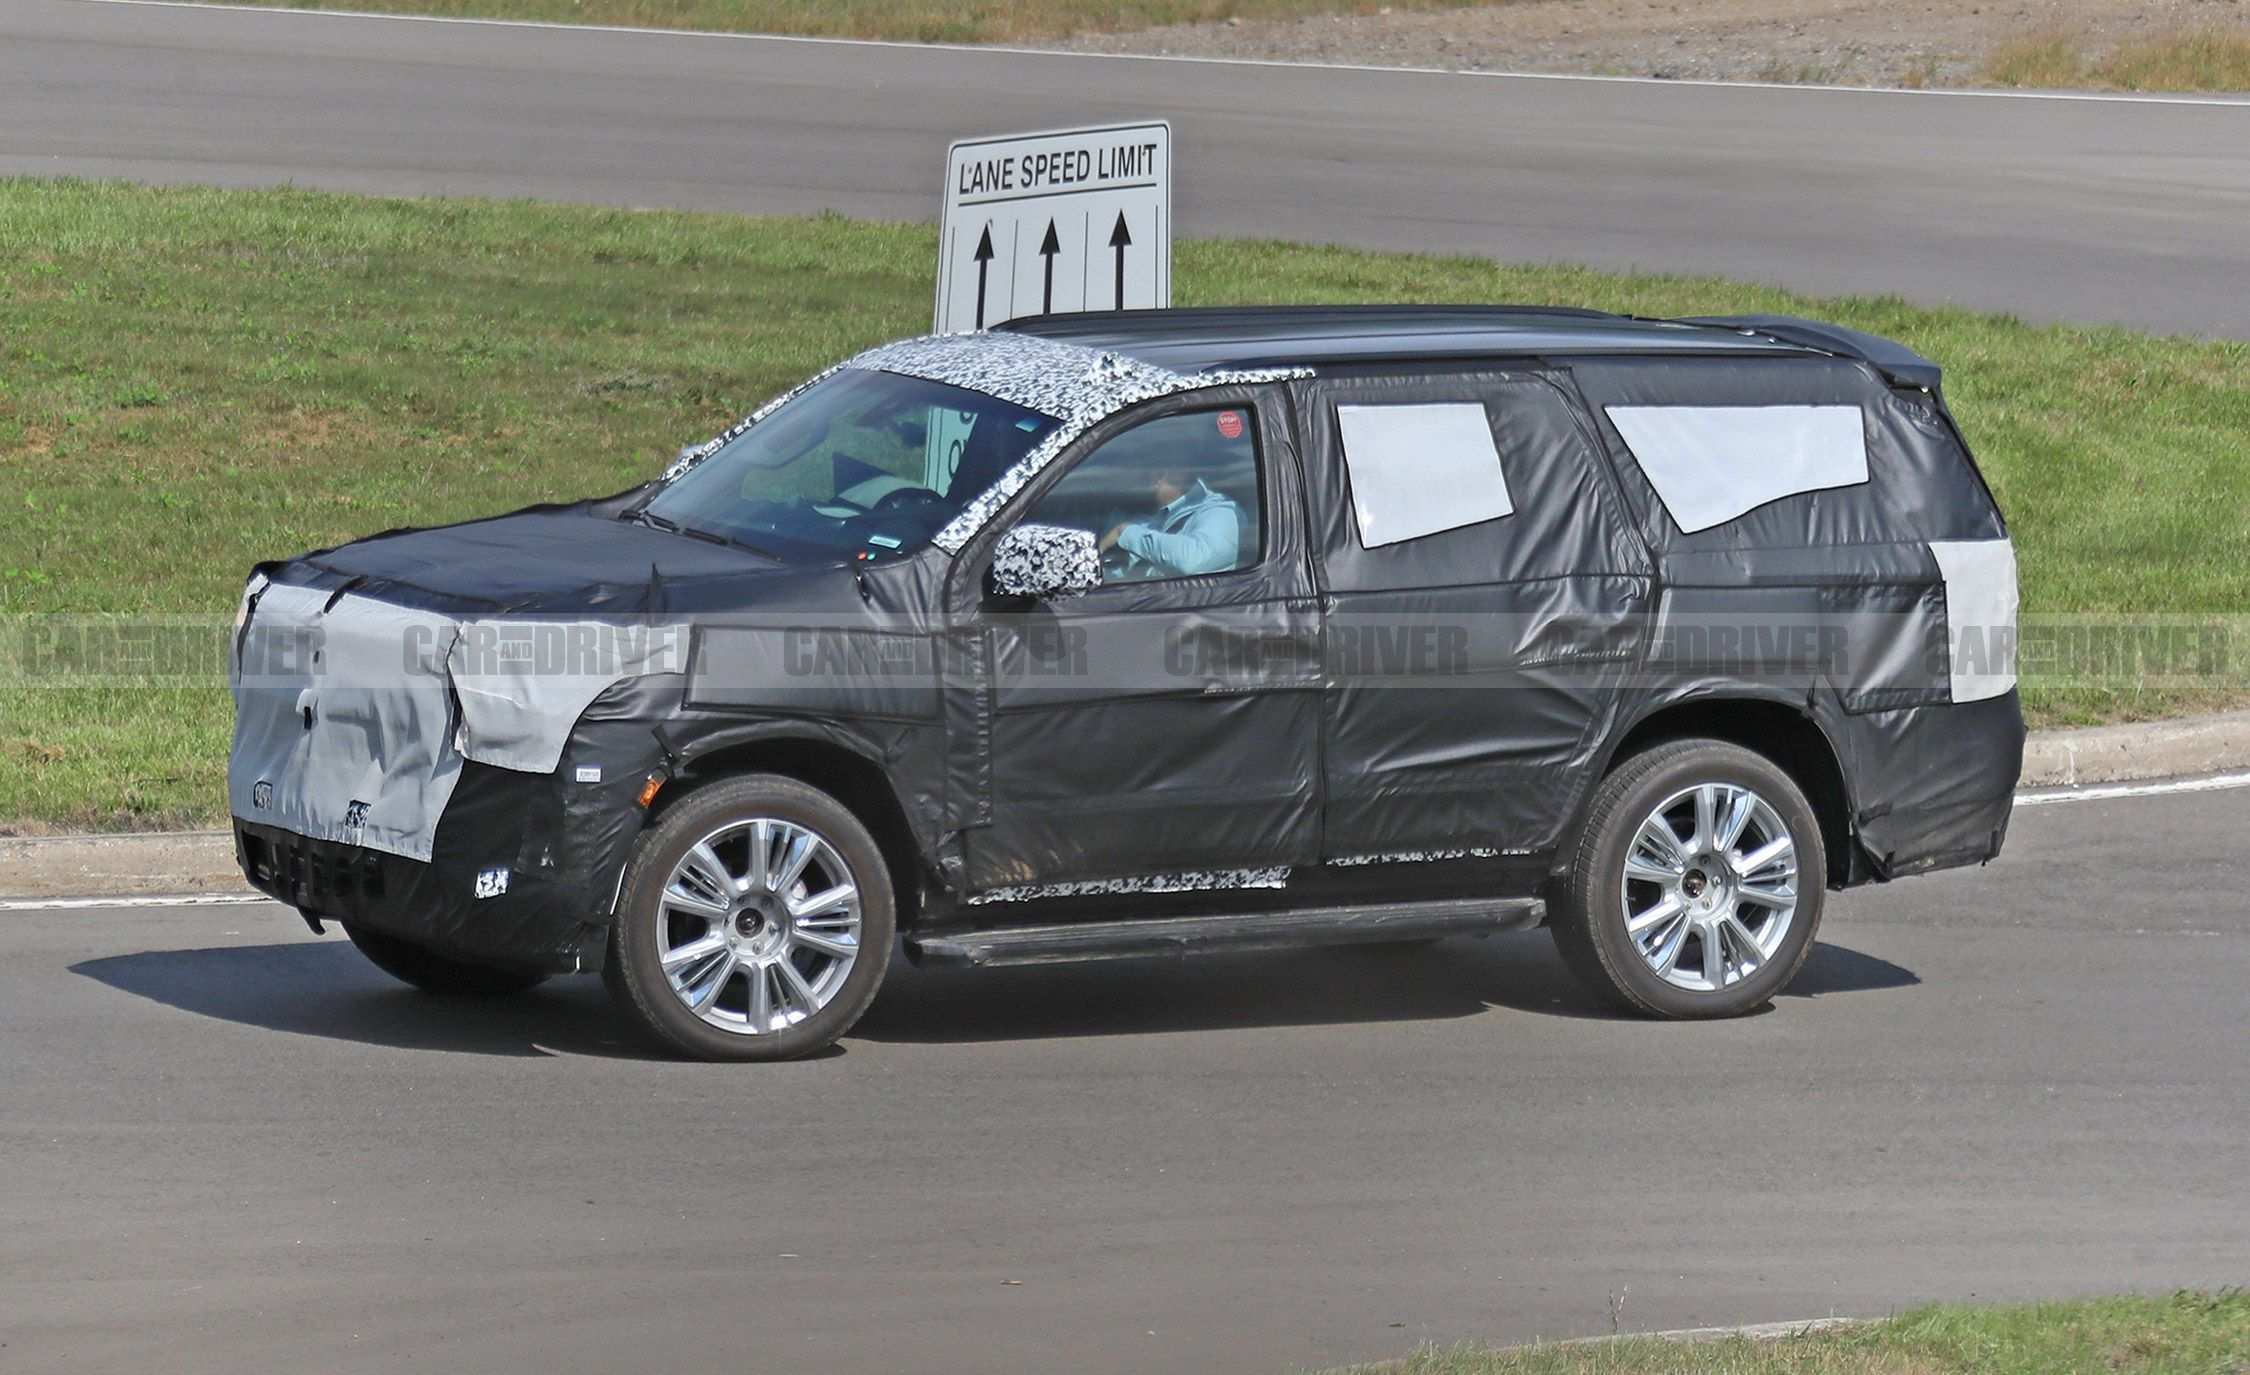 15 Concept of 2020 Chevrolet Suburban Diesel Style with 2020 Chevrolet Suburban Diesel